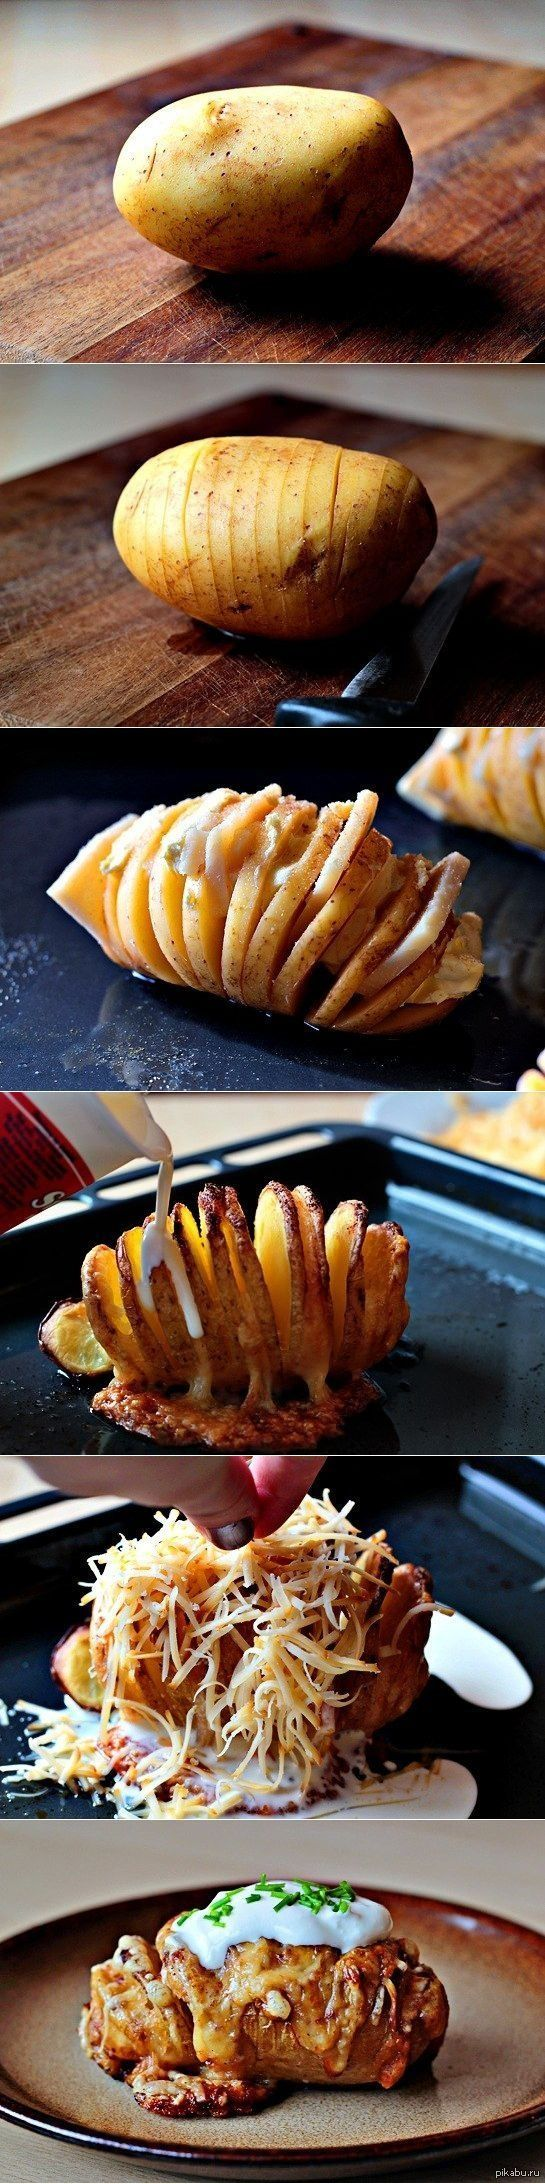 Partially slice an stuff your potato before baking.